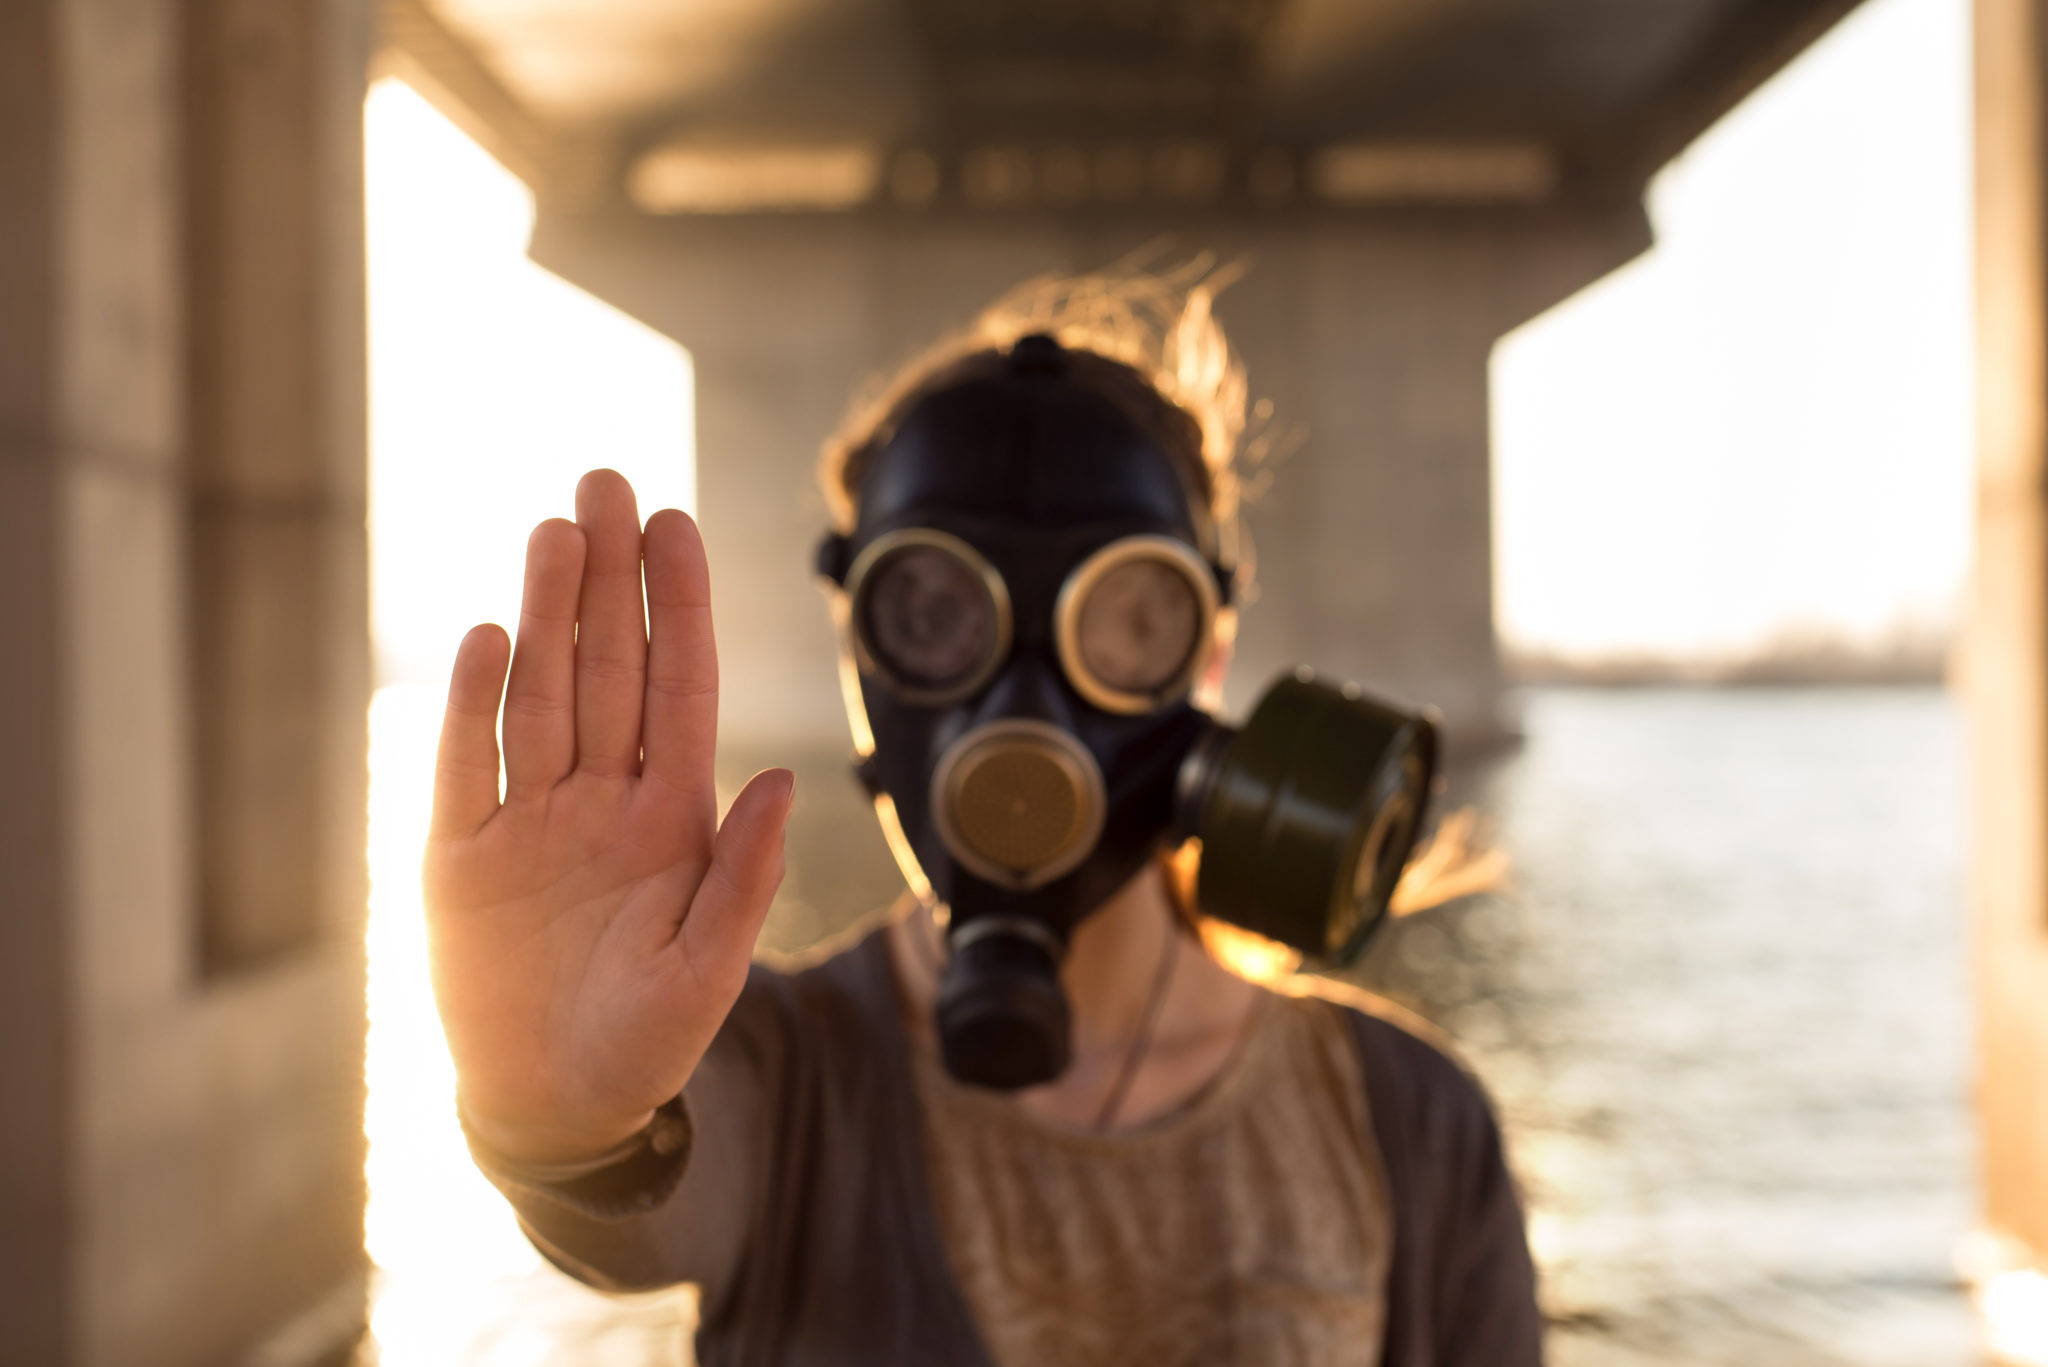 Pintura De Dedos No Toxica These 6 Types Of Toxic People Will Drain Your Energy